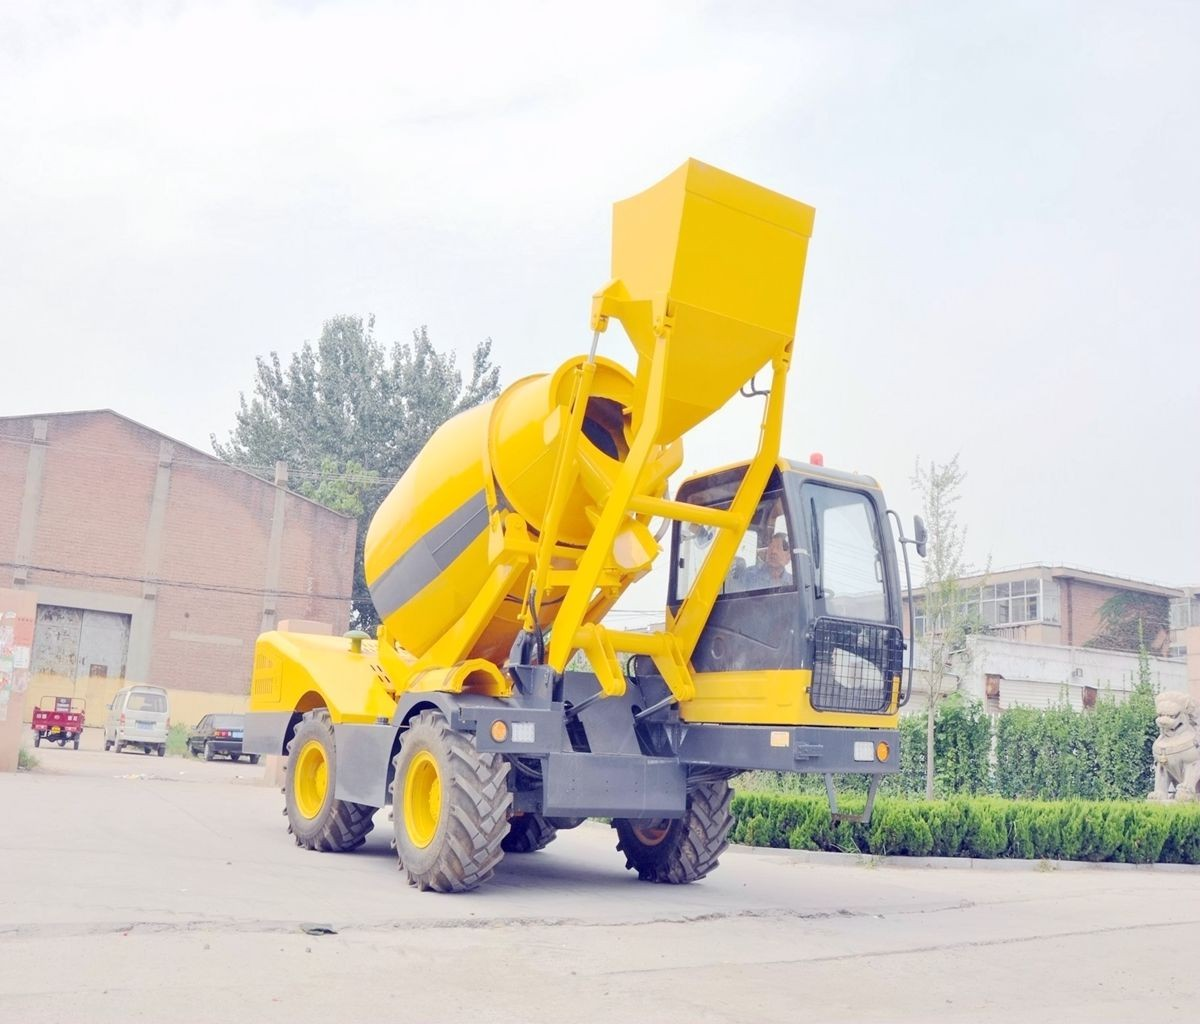 Sales Self-loading Concrete Mixer Weight Loaded Concrete Truck, Buy Self-loading Concrete Mixer Weight Loaded Concrete Truck, Self-loading Concrete Mixer Weight Loaded Concrete Truck Factory, Self-loading Concrete Mixer Weight Loaded Concrete Truck Brands